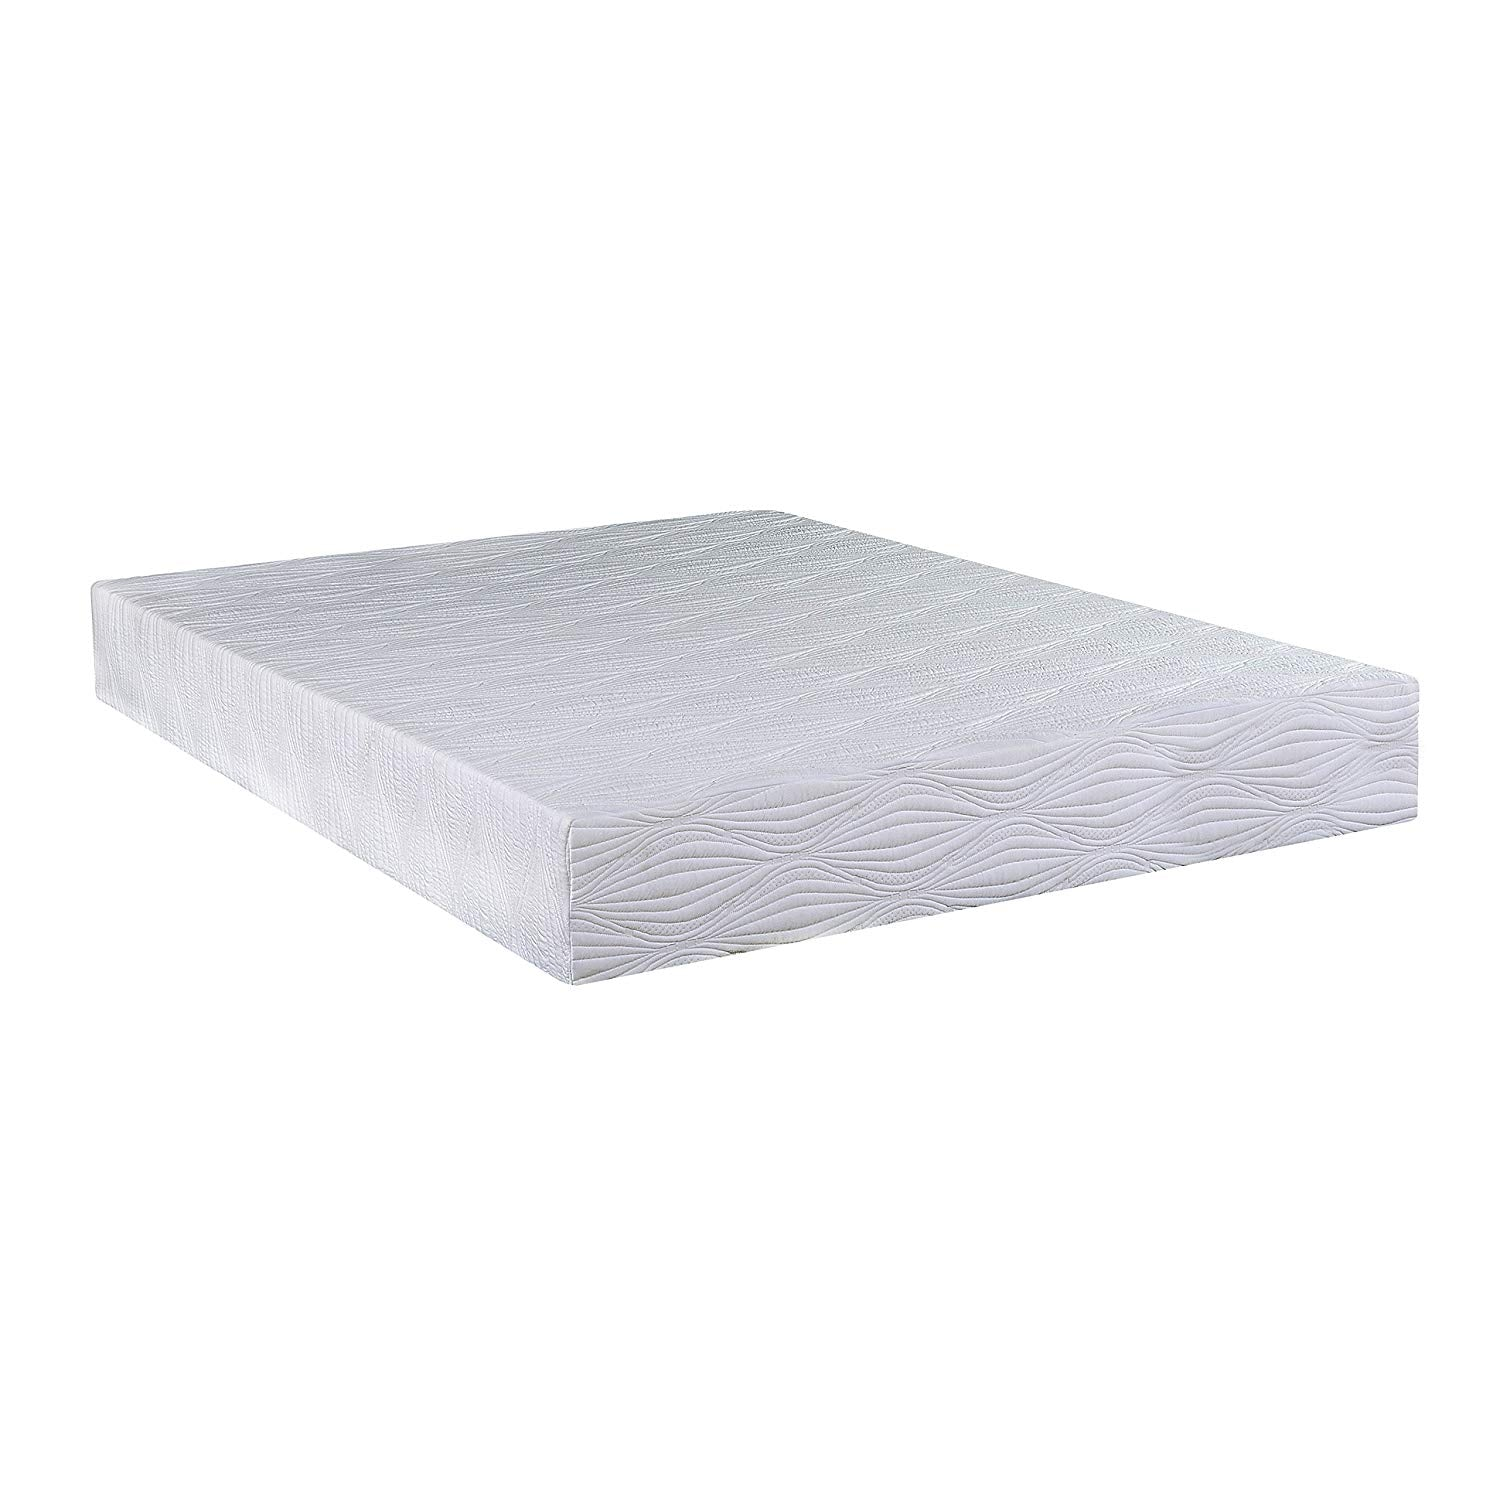 "10"" Twin Gel Infused Memory Foam Mattress with CertiPUR-US Certified Foam"